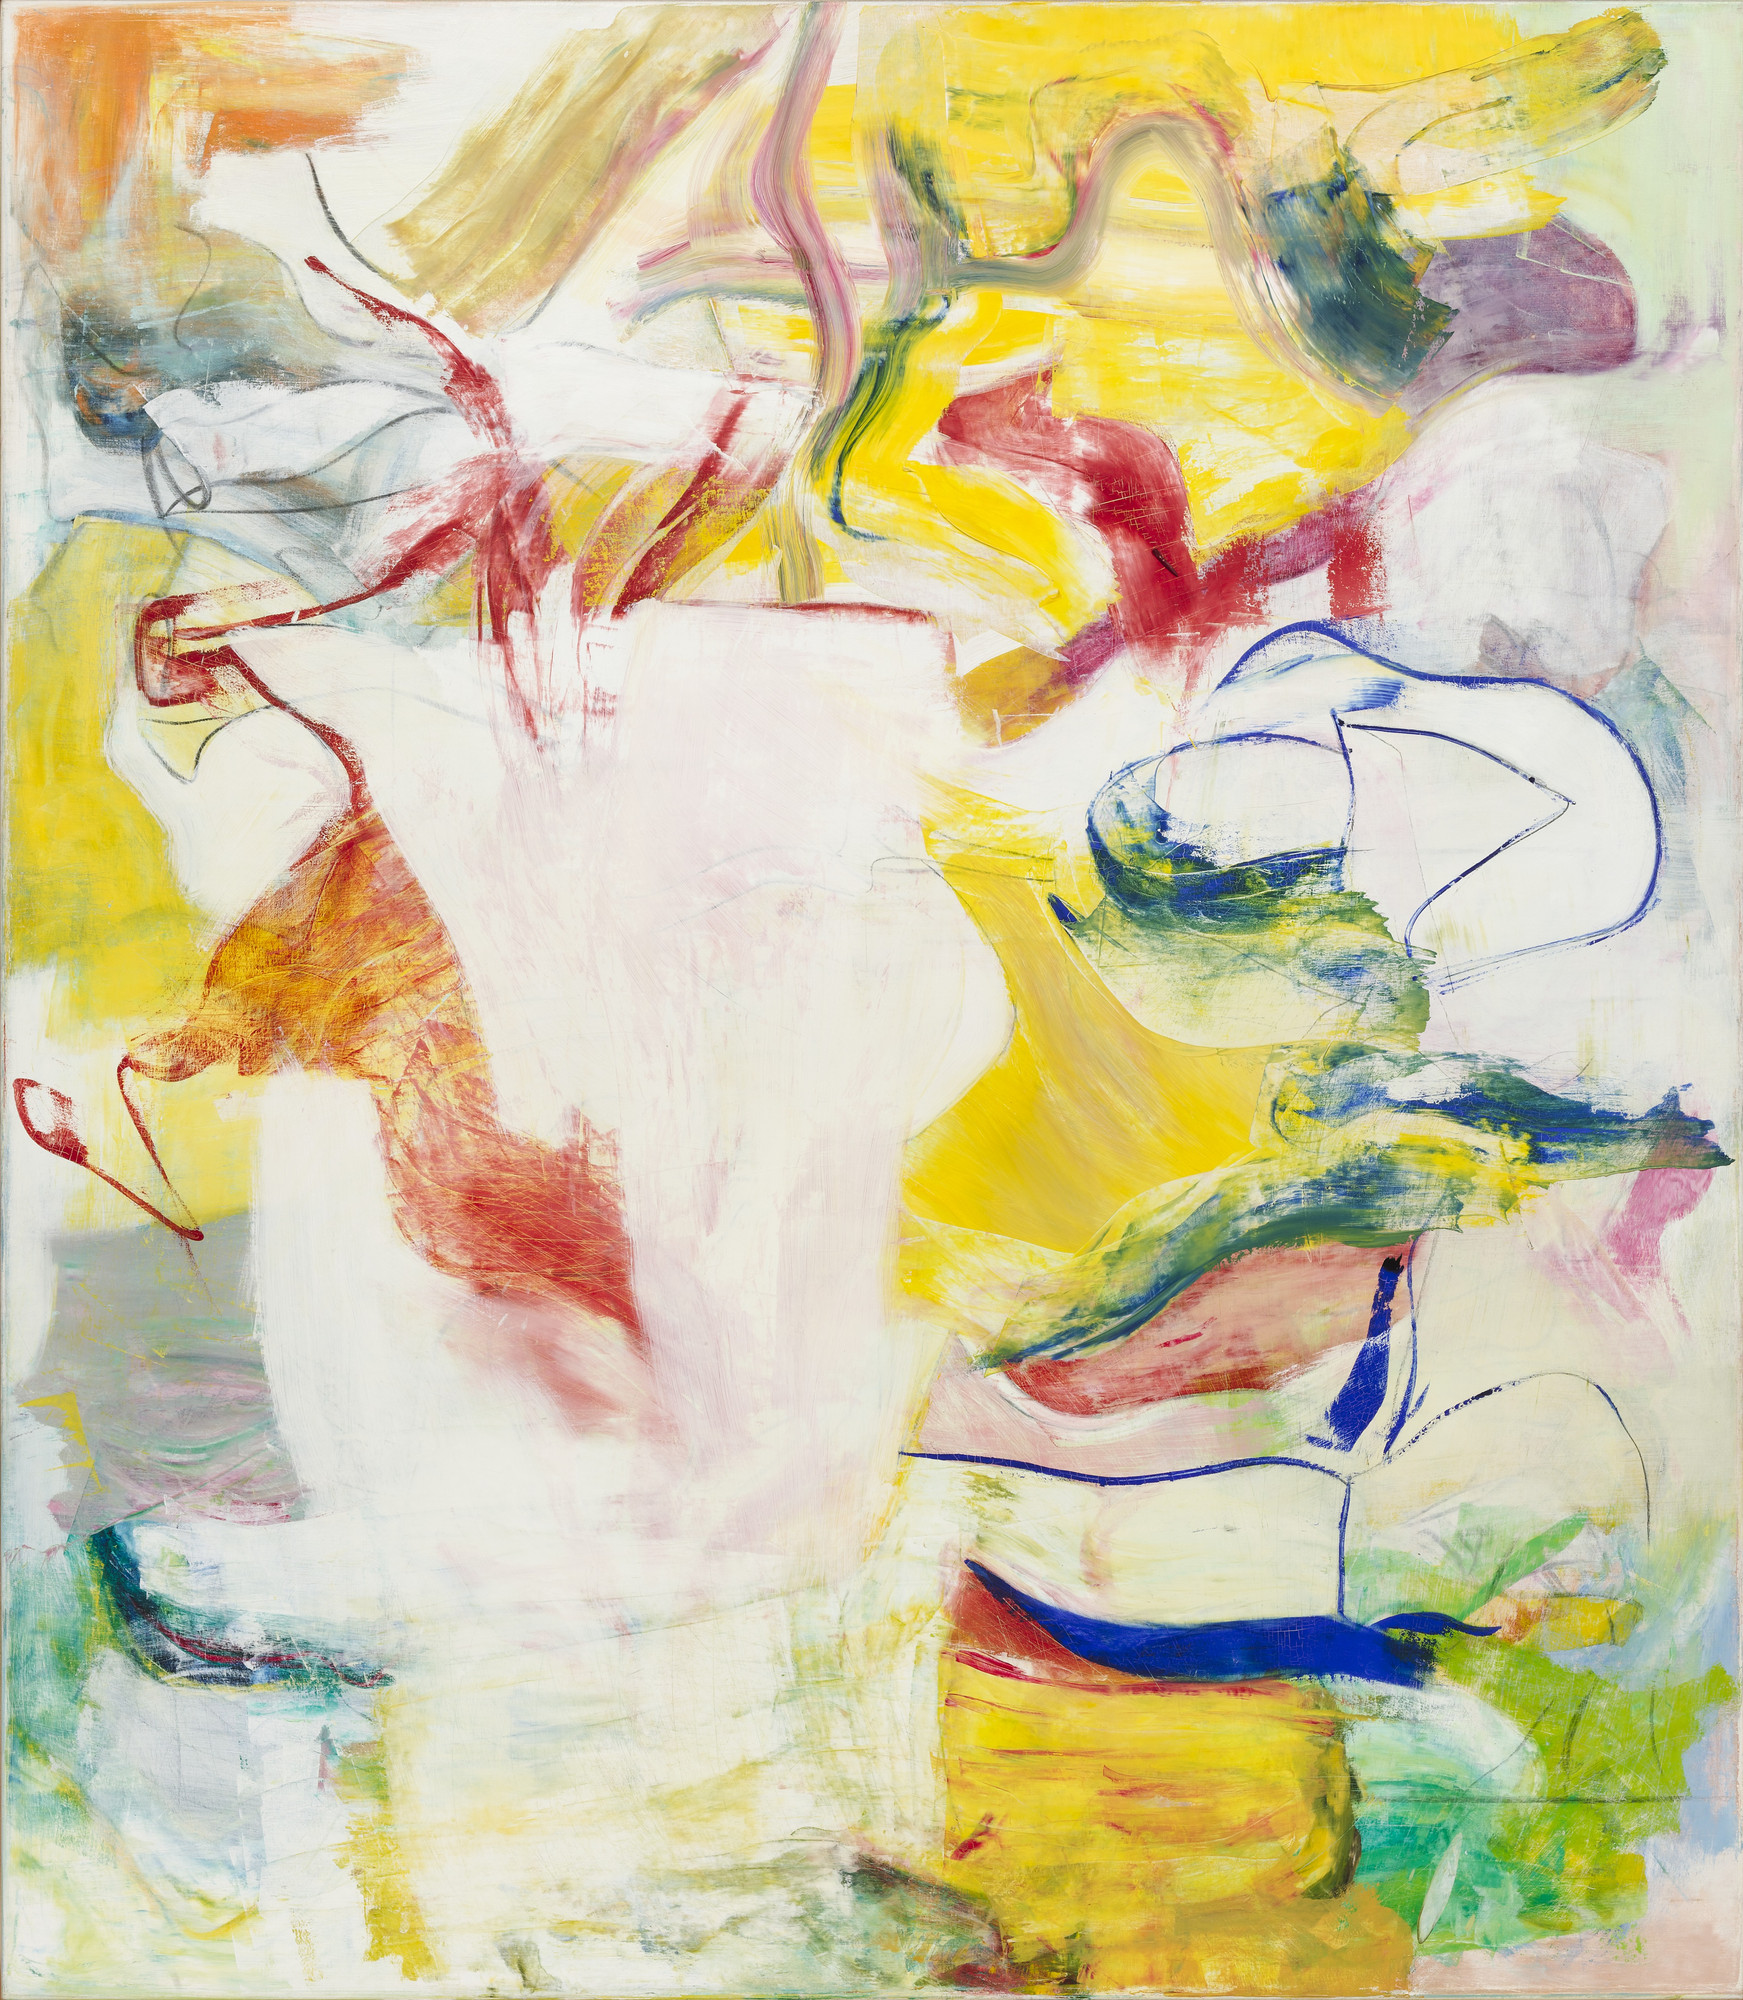 Willem de Kooning. Pirate (Untitled II). 1981